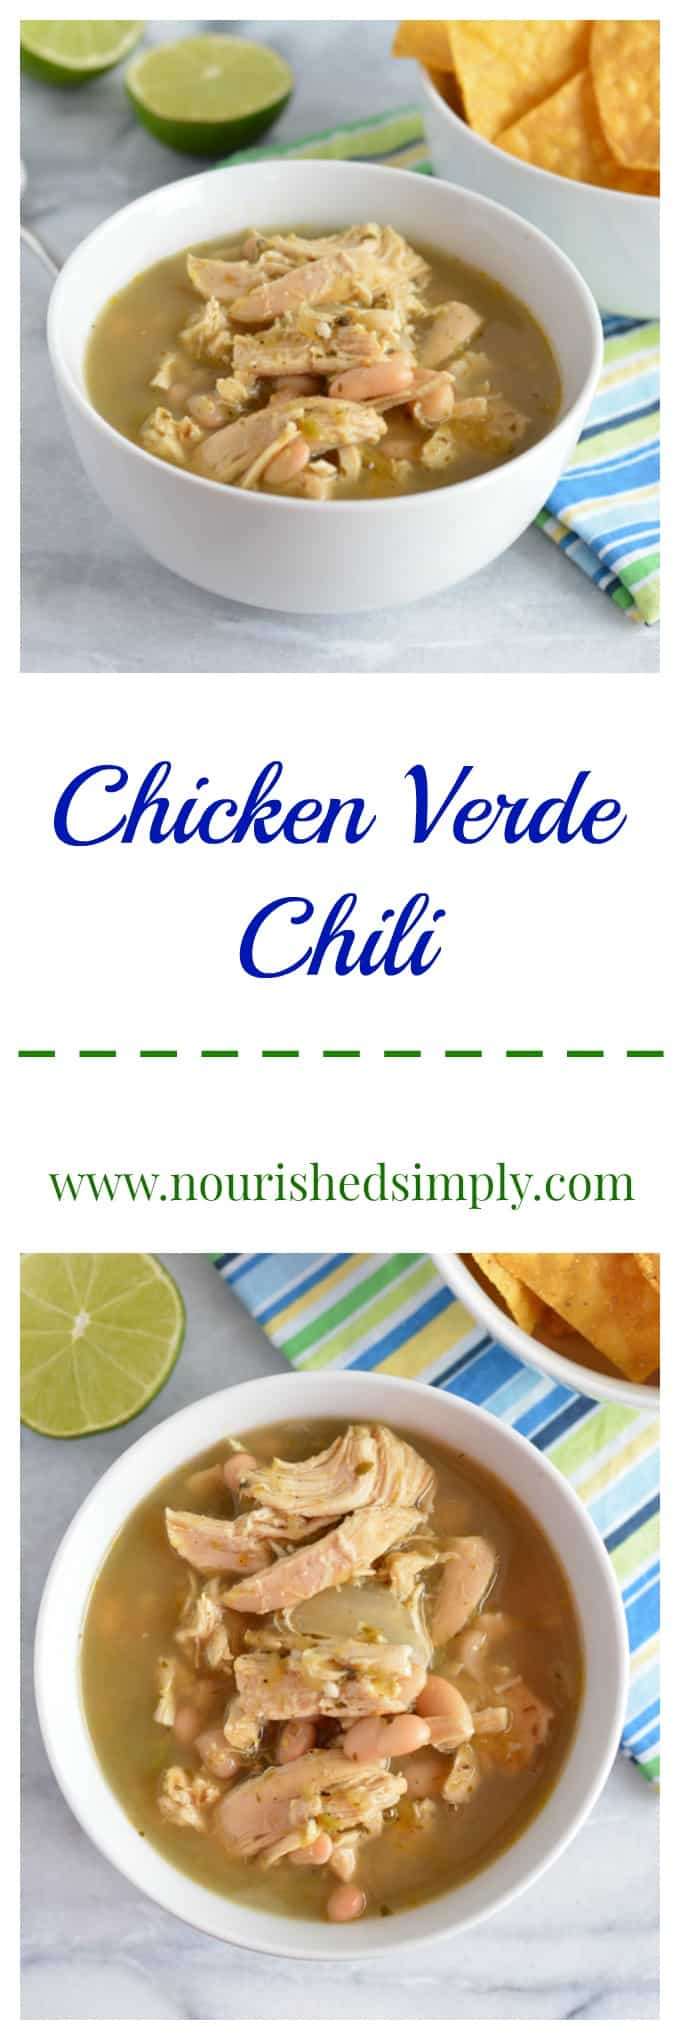 Slow Cooker Chicken Verde Chili - A perfect fix it and forget it dinner? Just put all the ingredients into your slow cooker and it's ready in no time!